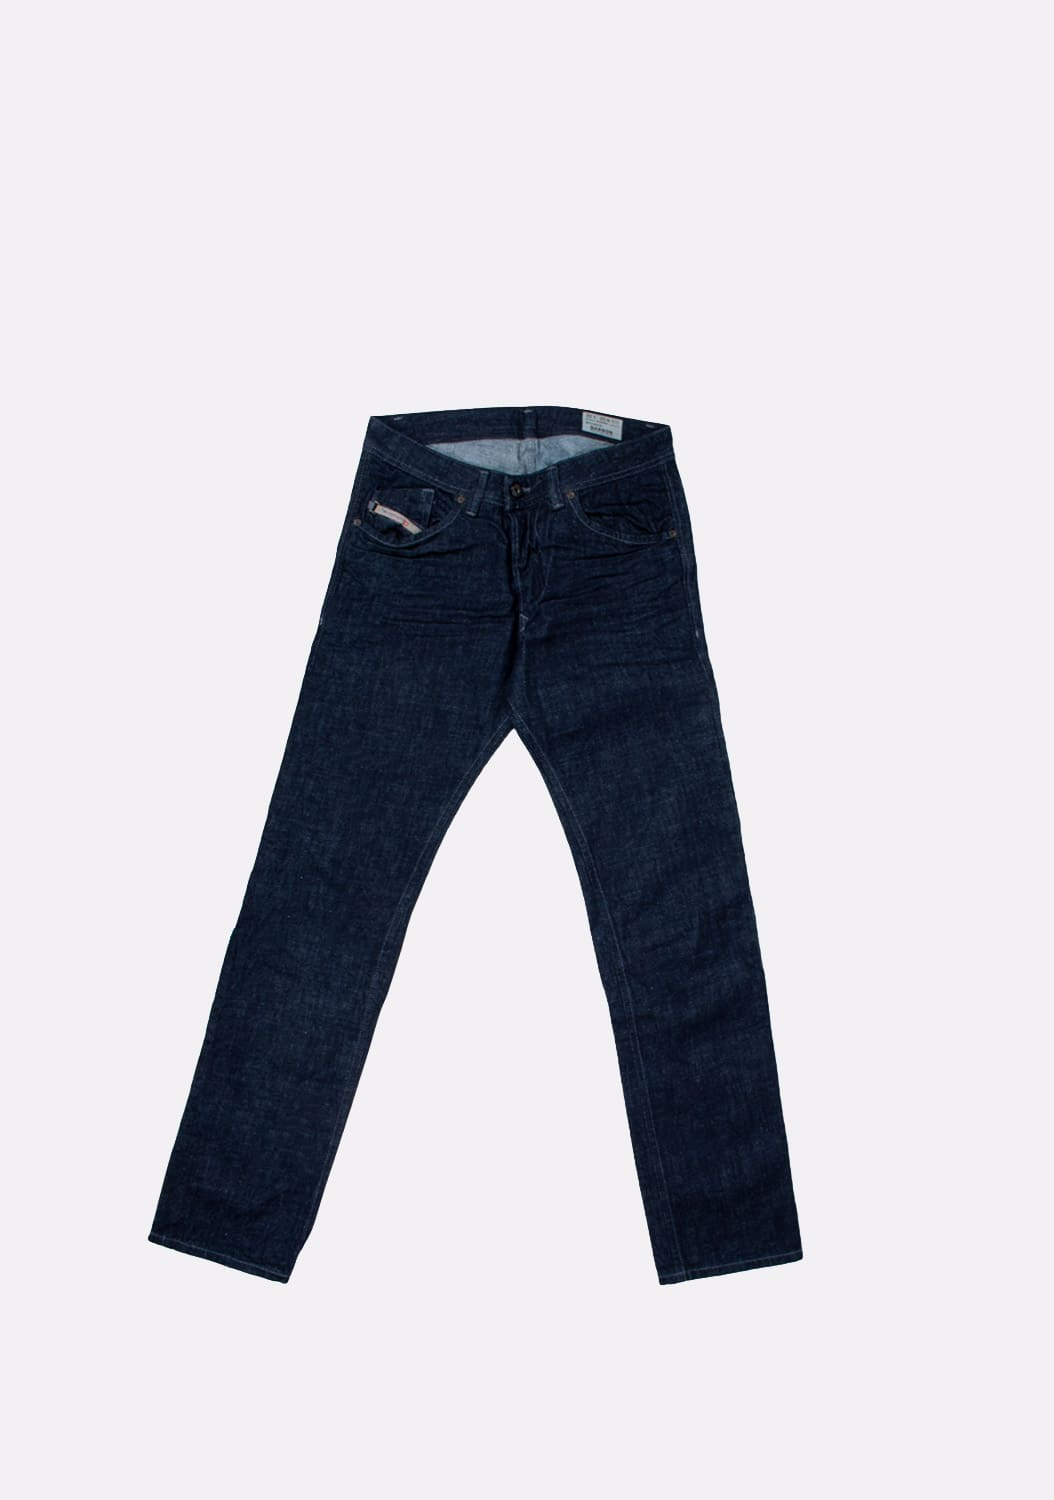 Diesel-Darron-0R07R-Regular-Slim-tapered-dydis-32 (2)